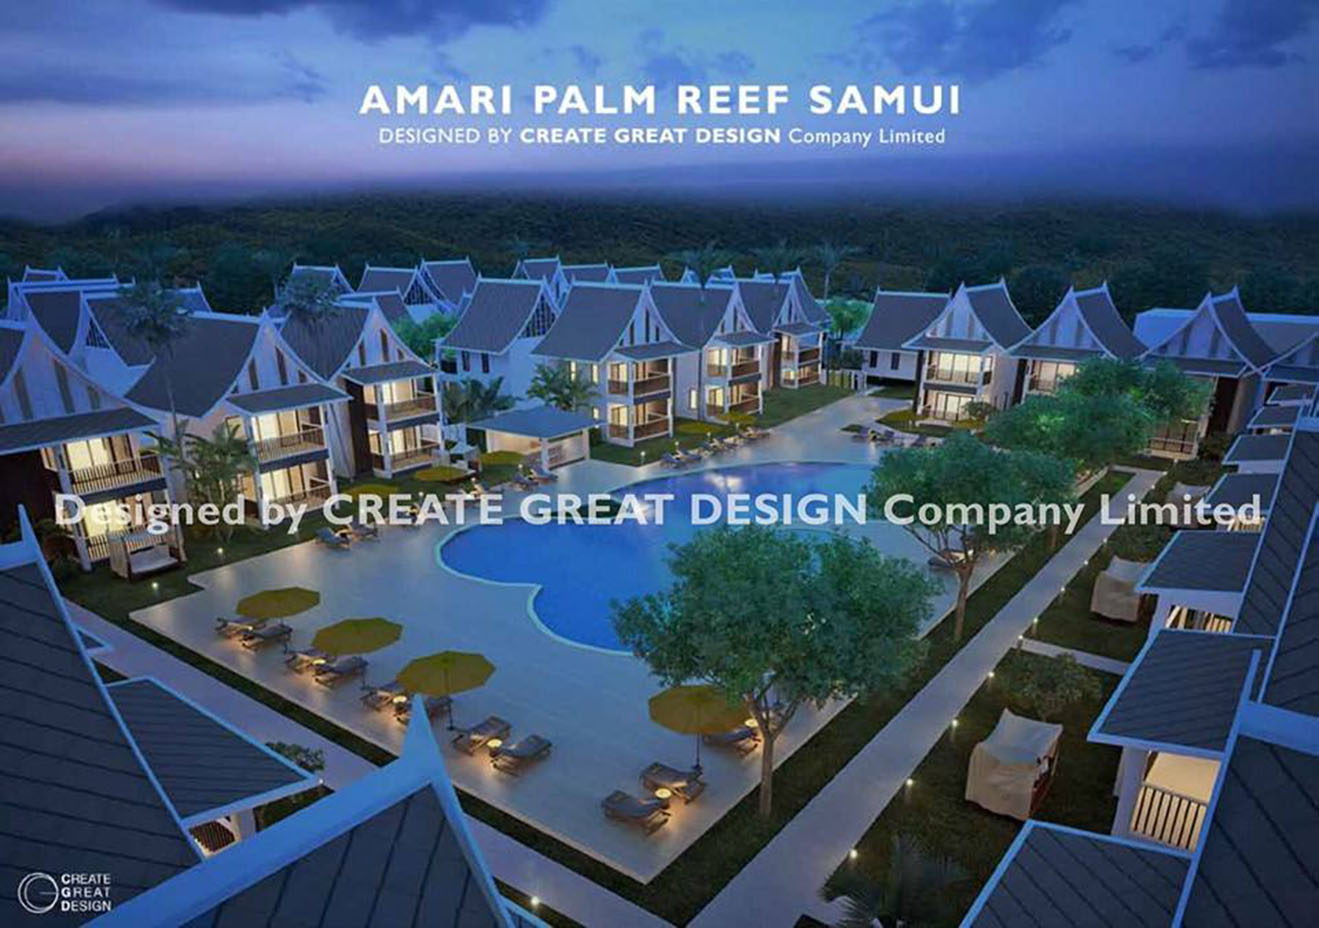 Amari Palm Reef Samui